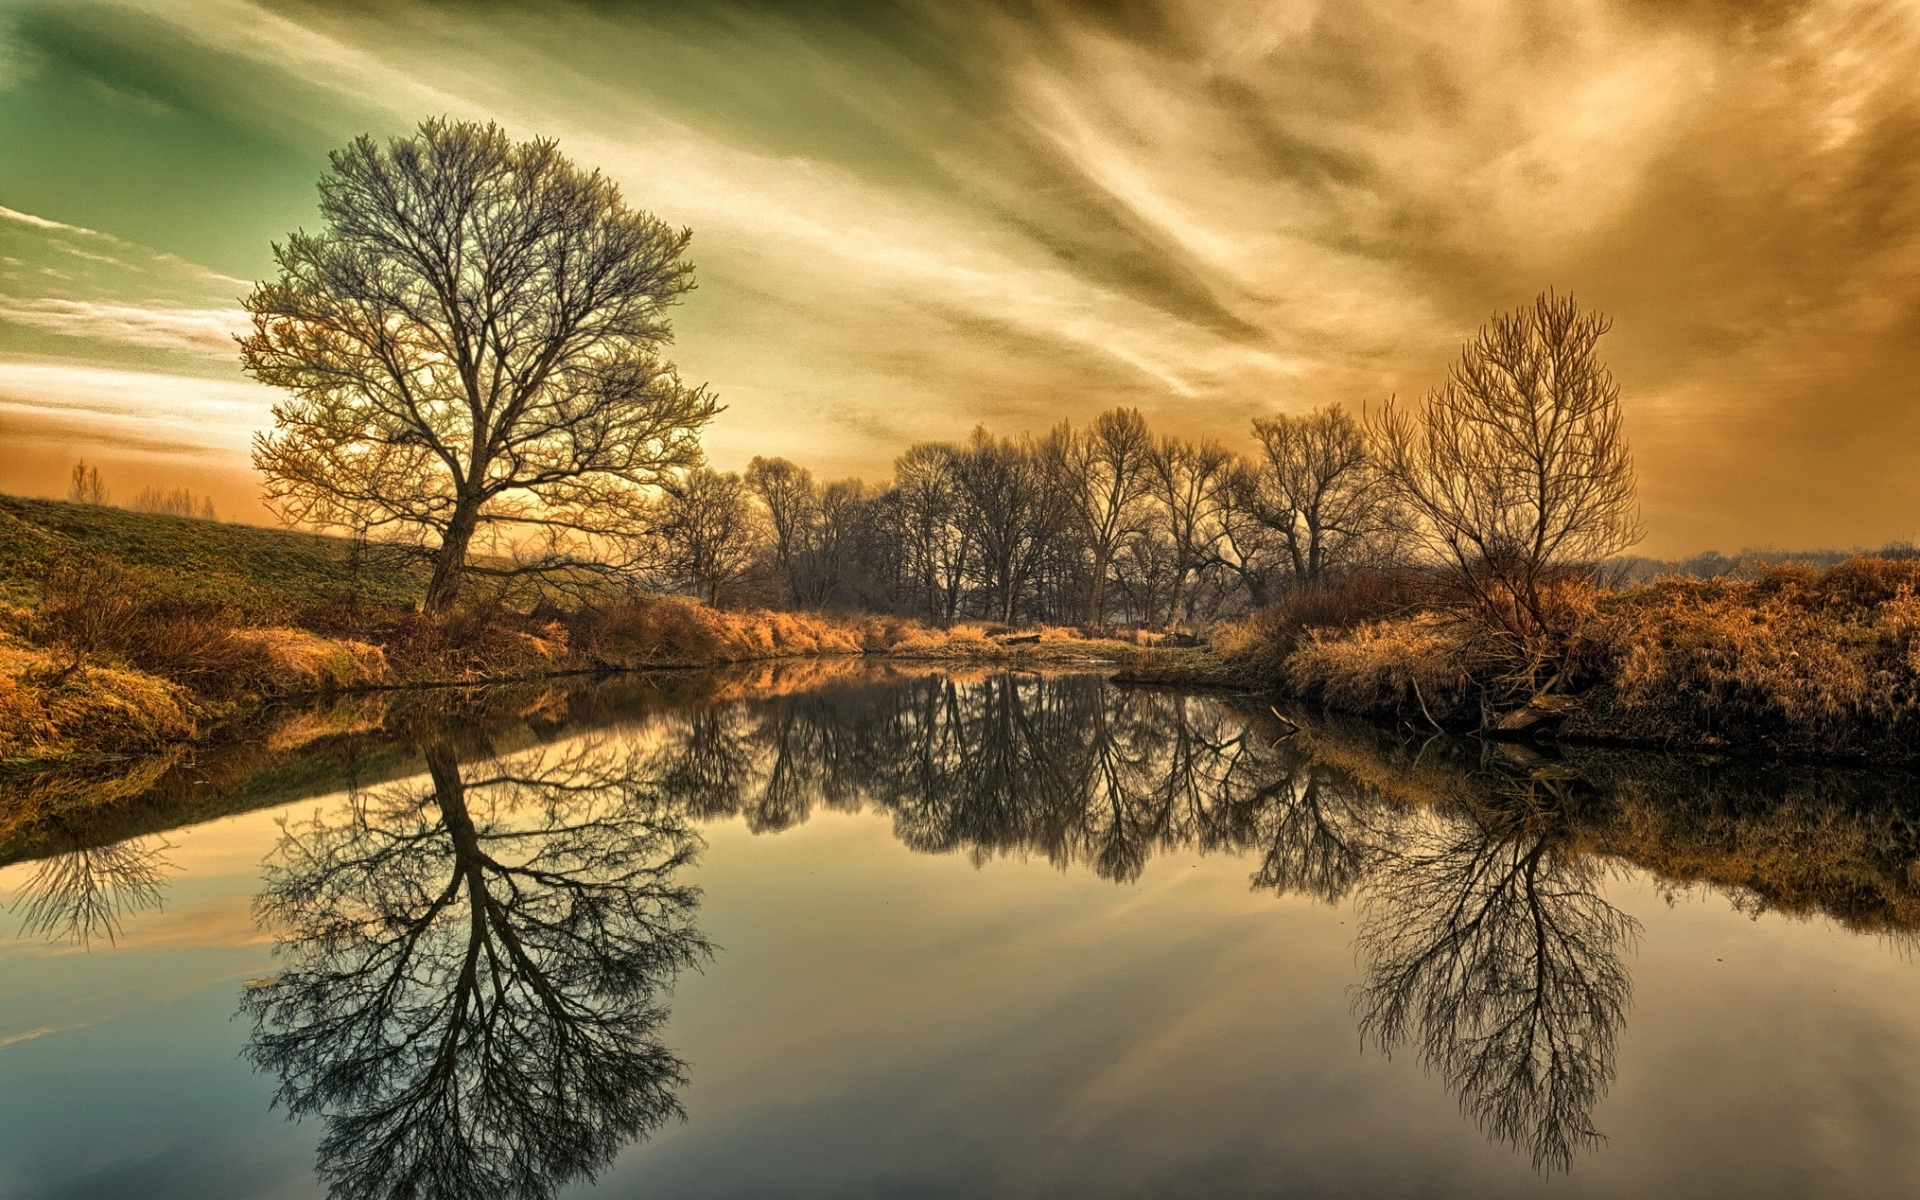 Amazing Iphone X Wallpapers Wonderful Trees Reflection Wallpapers Wonderful Trees